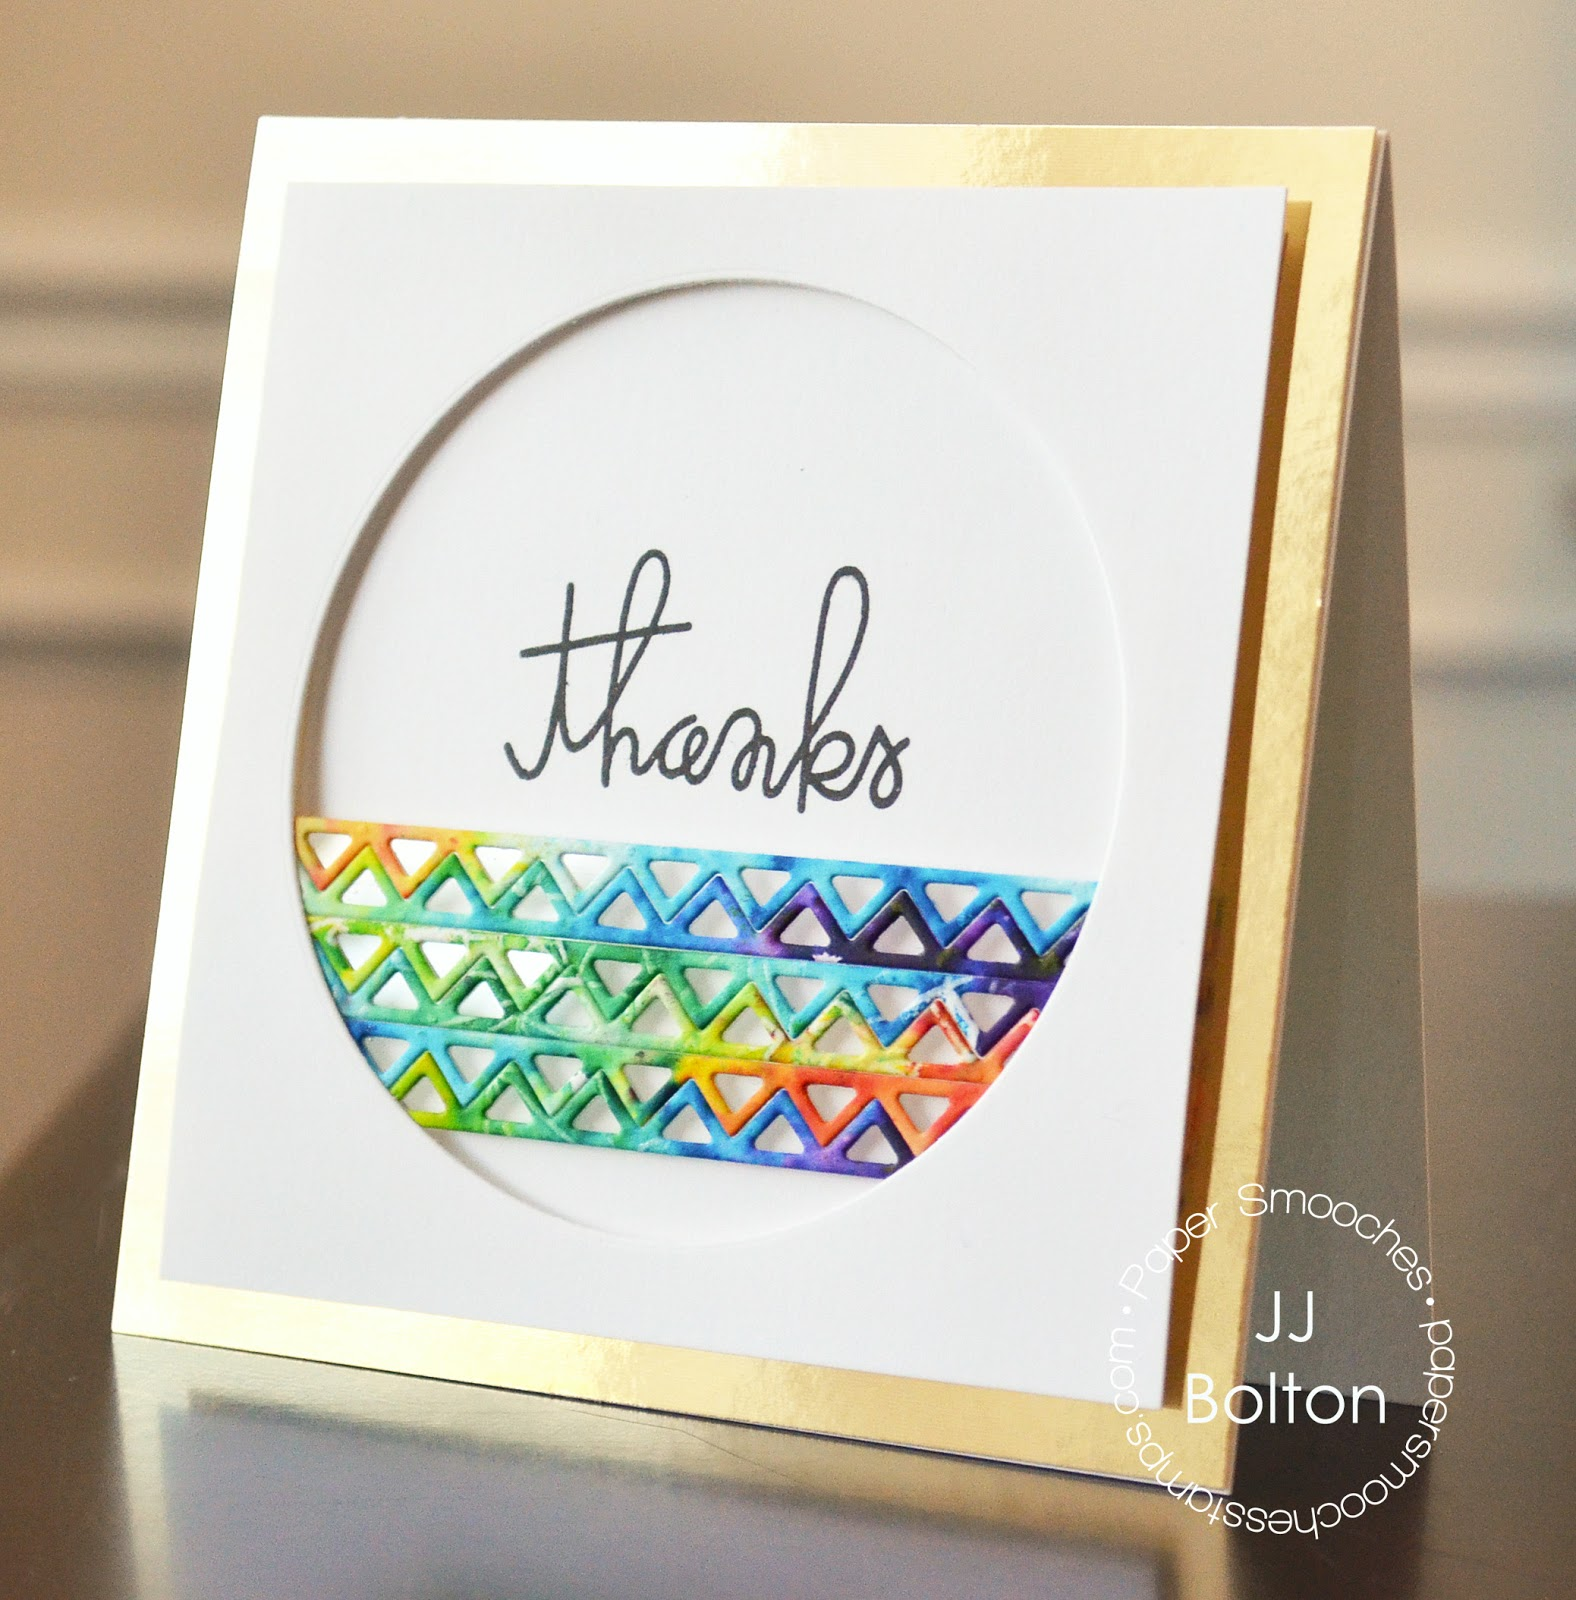 Jj Bolton Handmade Cards Bright Cards With Paper Smooches